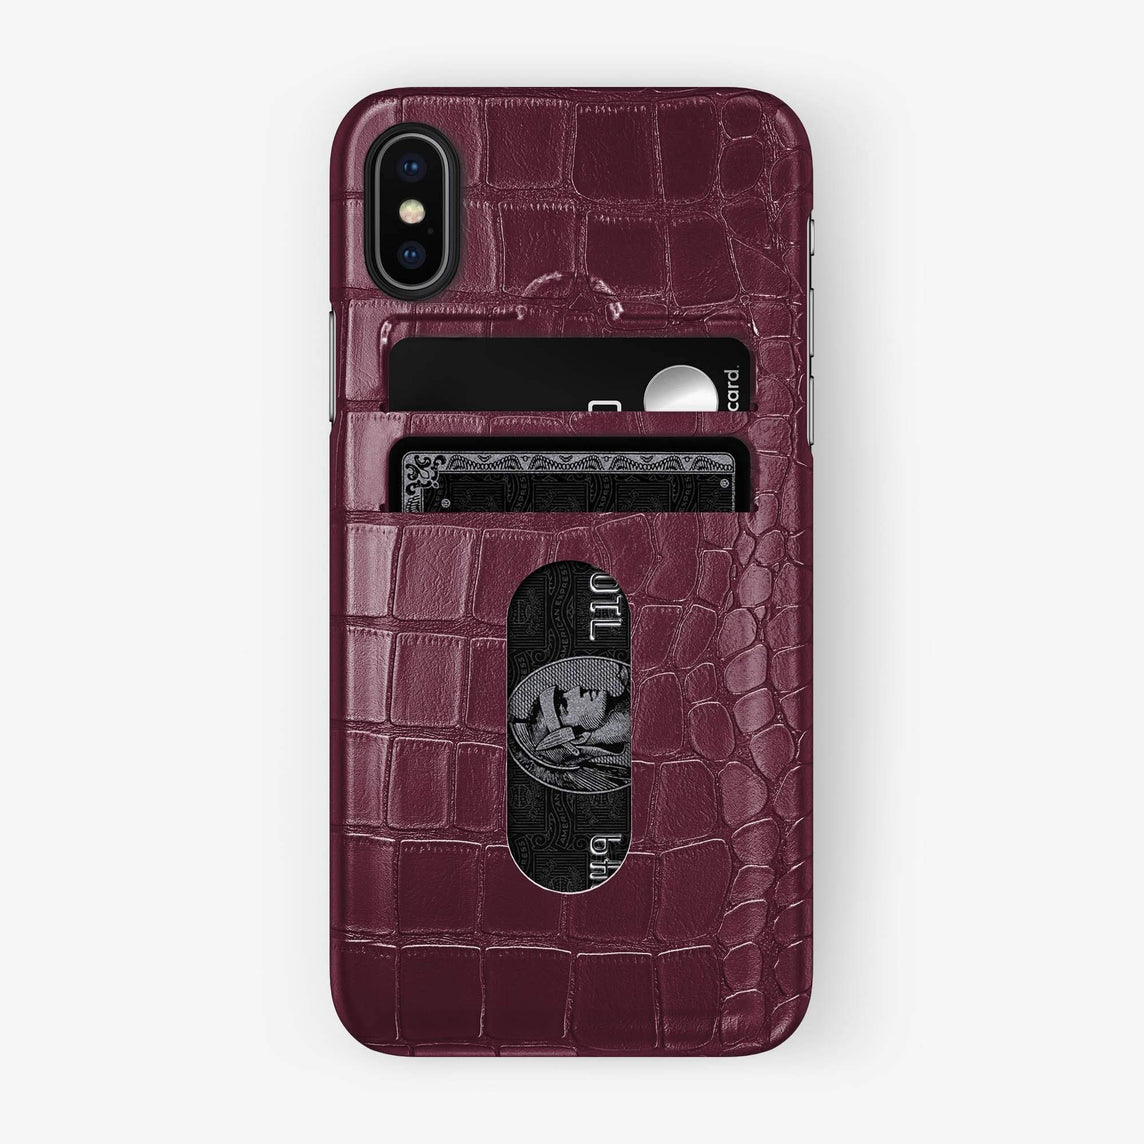 Alligator Card Holder Case iPhone Xs Max | Burgundy - Black - Hadoro